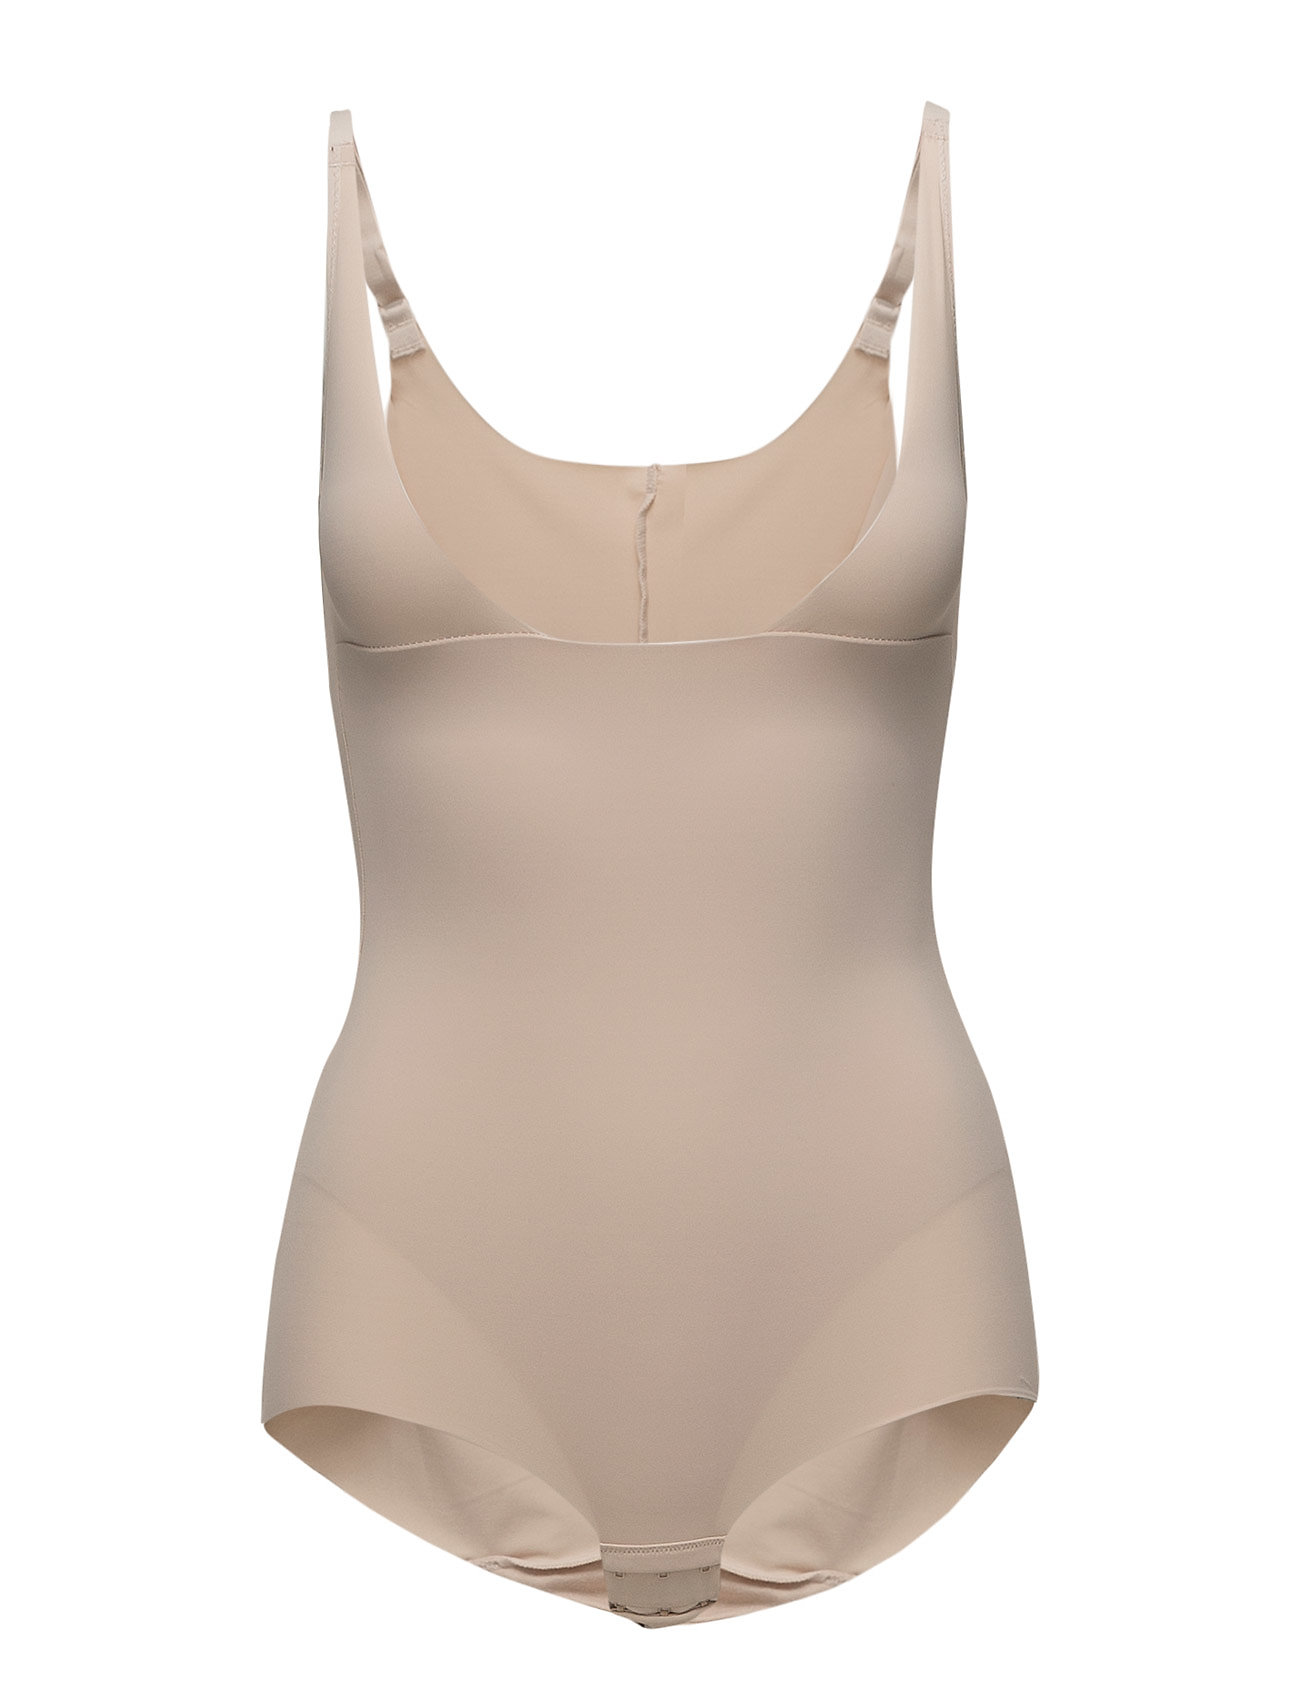 81e40db42a4c Sleek Smoothers (Paris Nude) (£40) - Maidenform - | Boozt.com